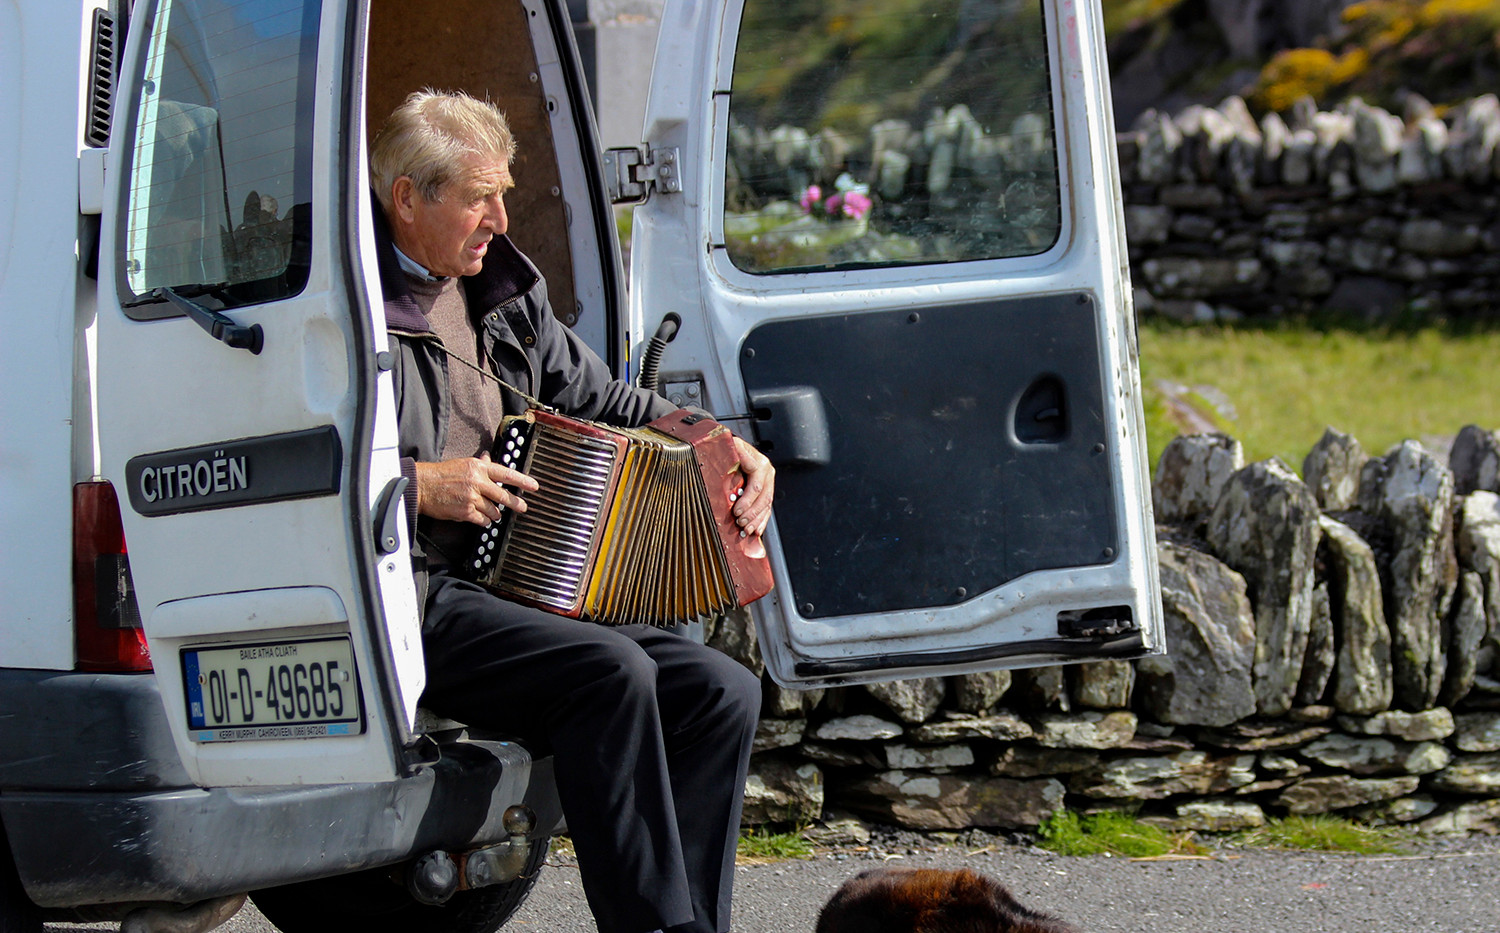 Roadside Entertainment the Irish Way